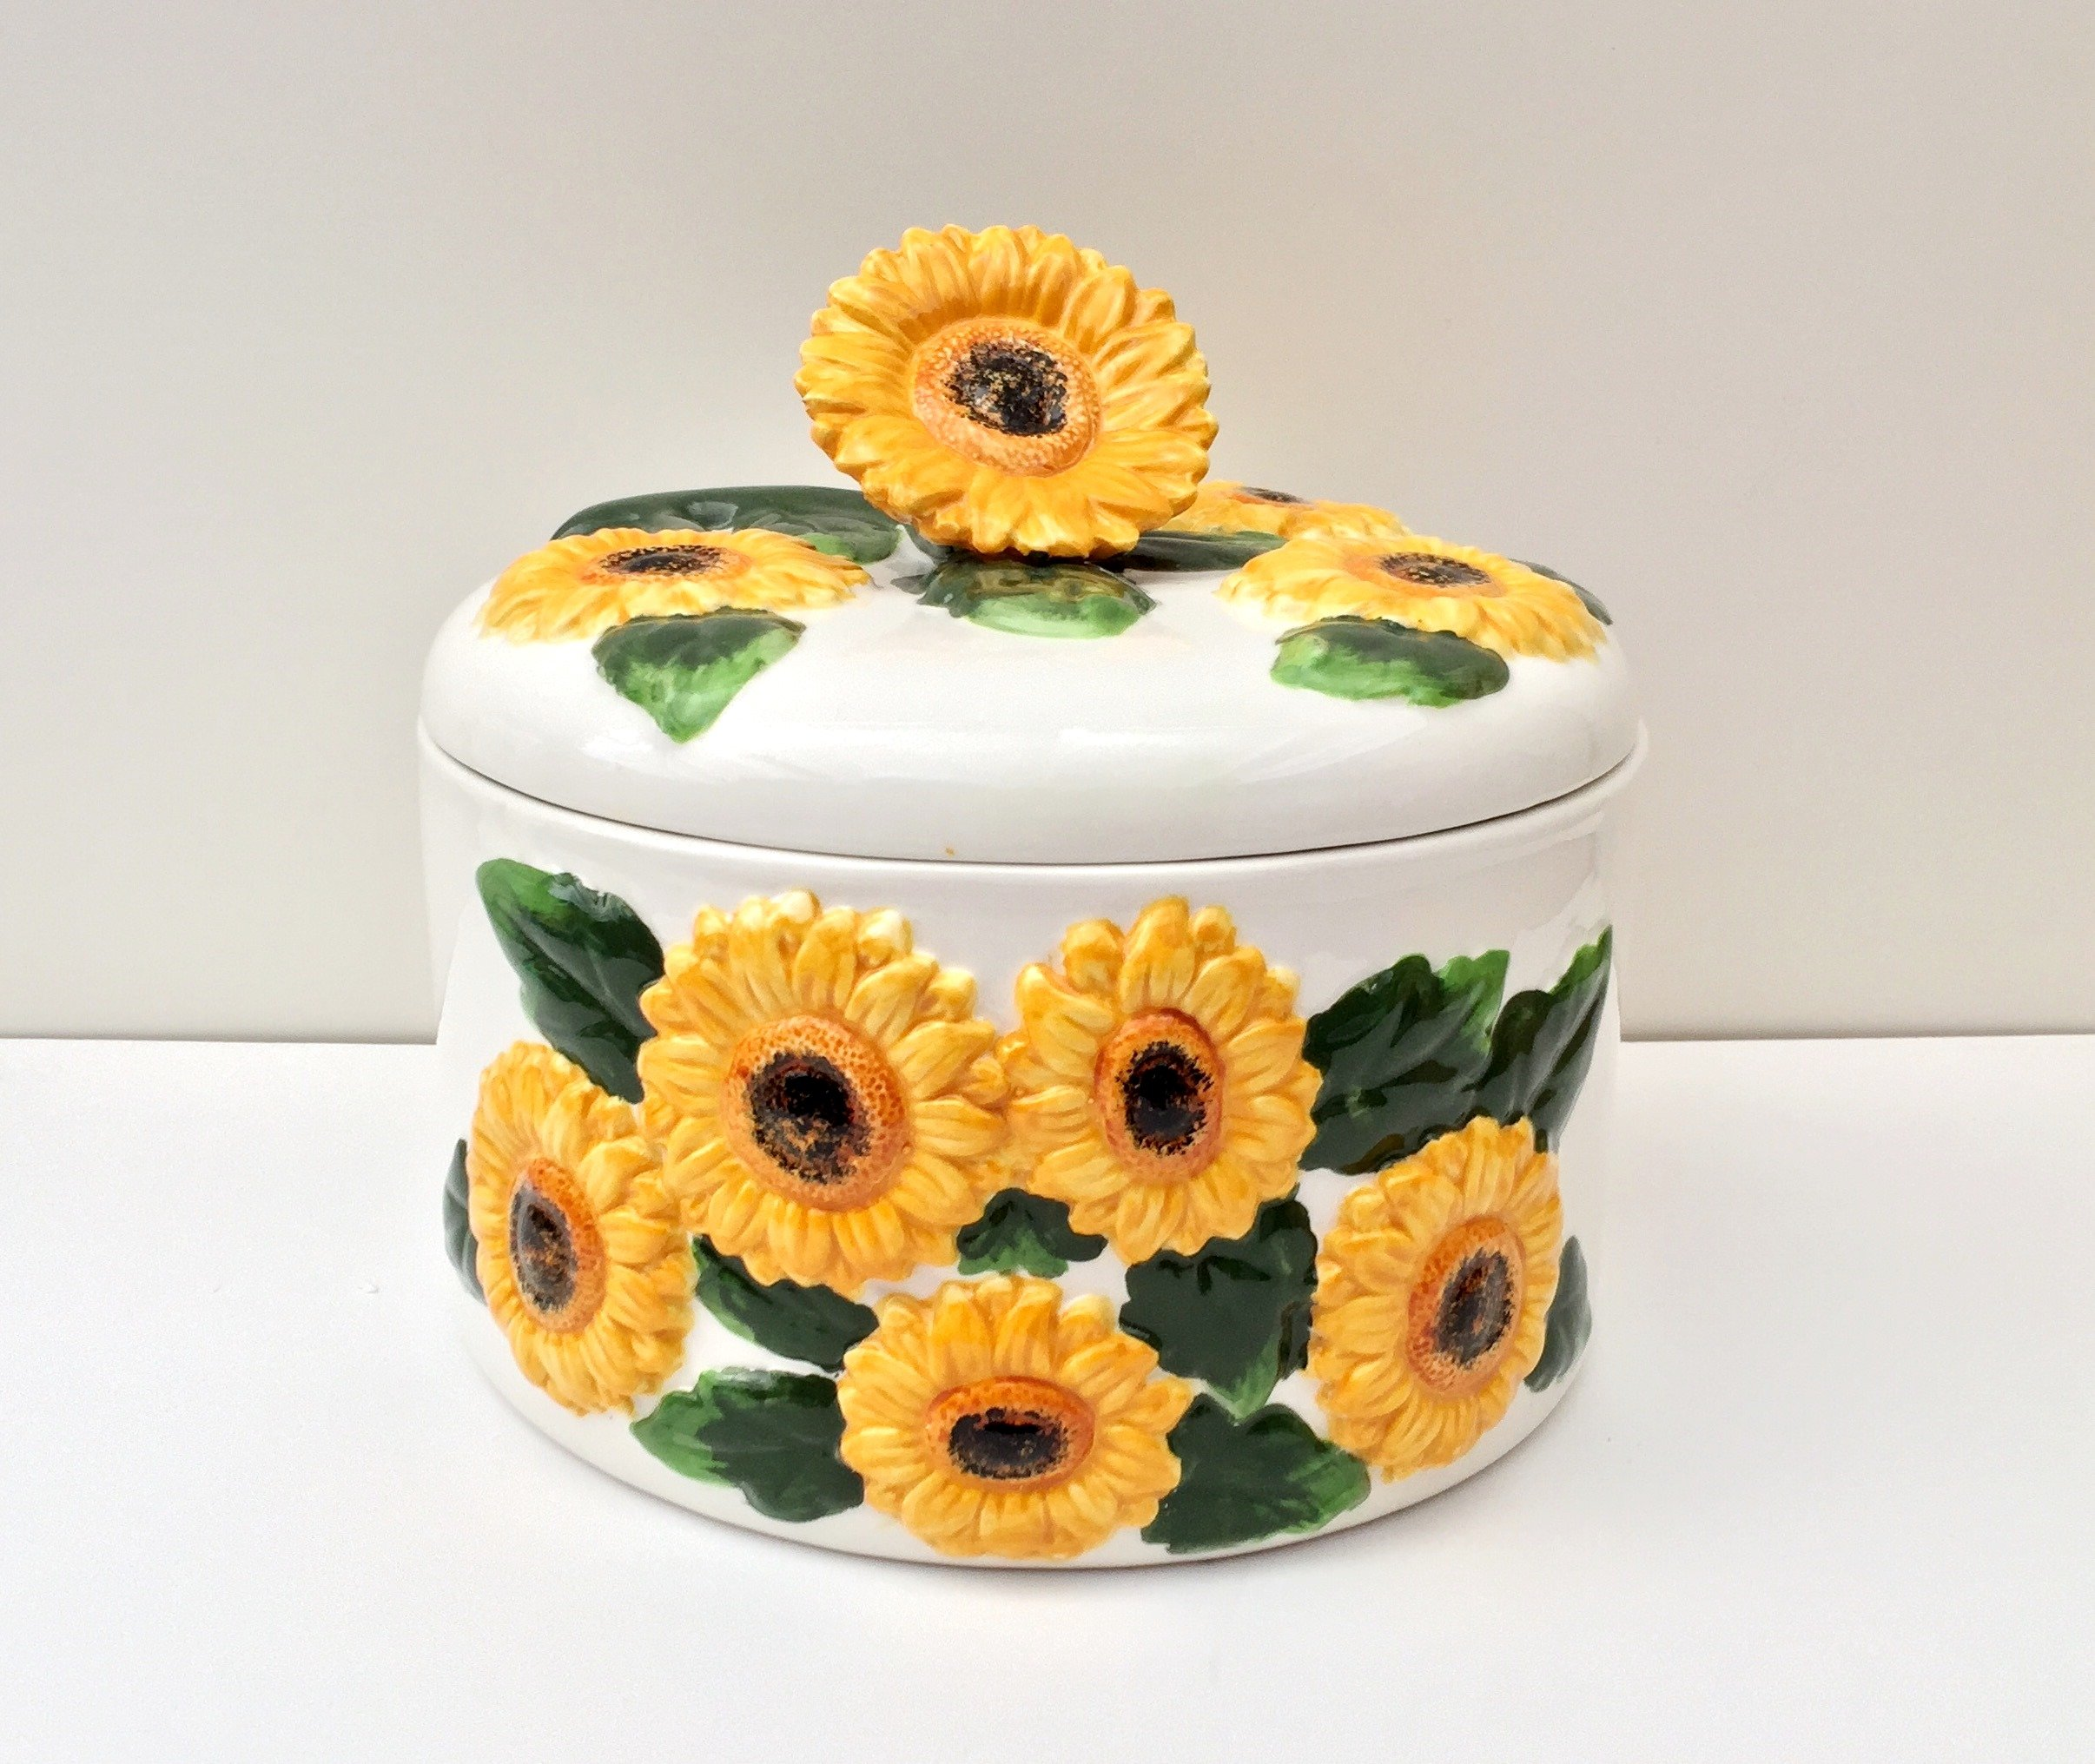 Tuscany 3D Sunflower Tortilla Warmer by A.C.K. Trading Co.